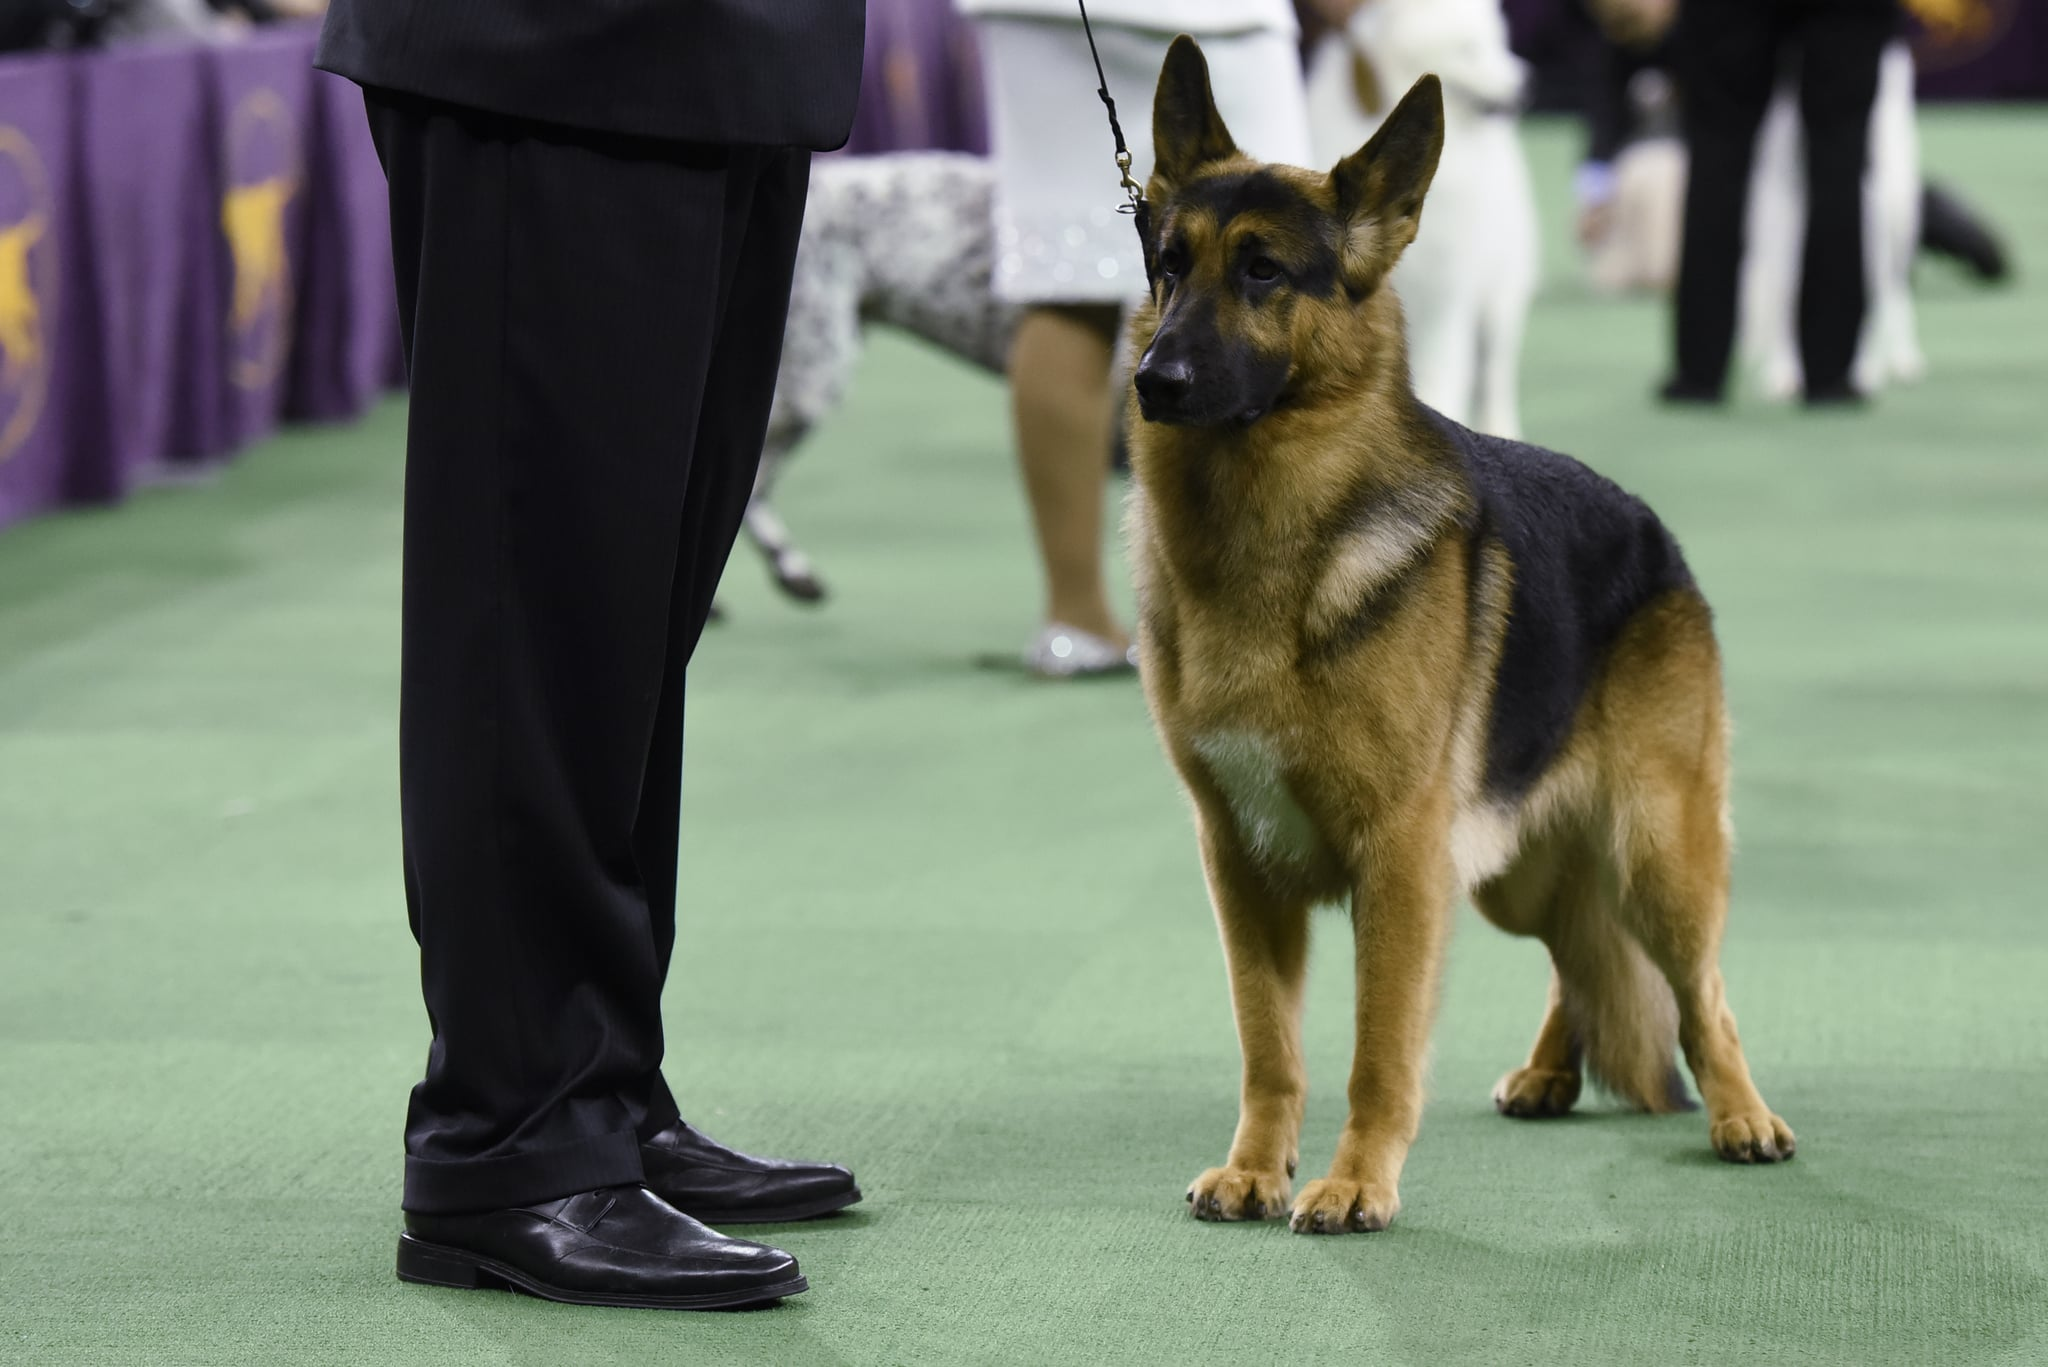 Rumor has it! German shepherd takes top prize at dog show